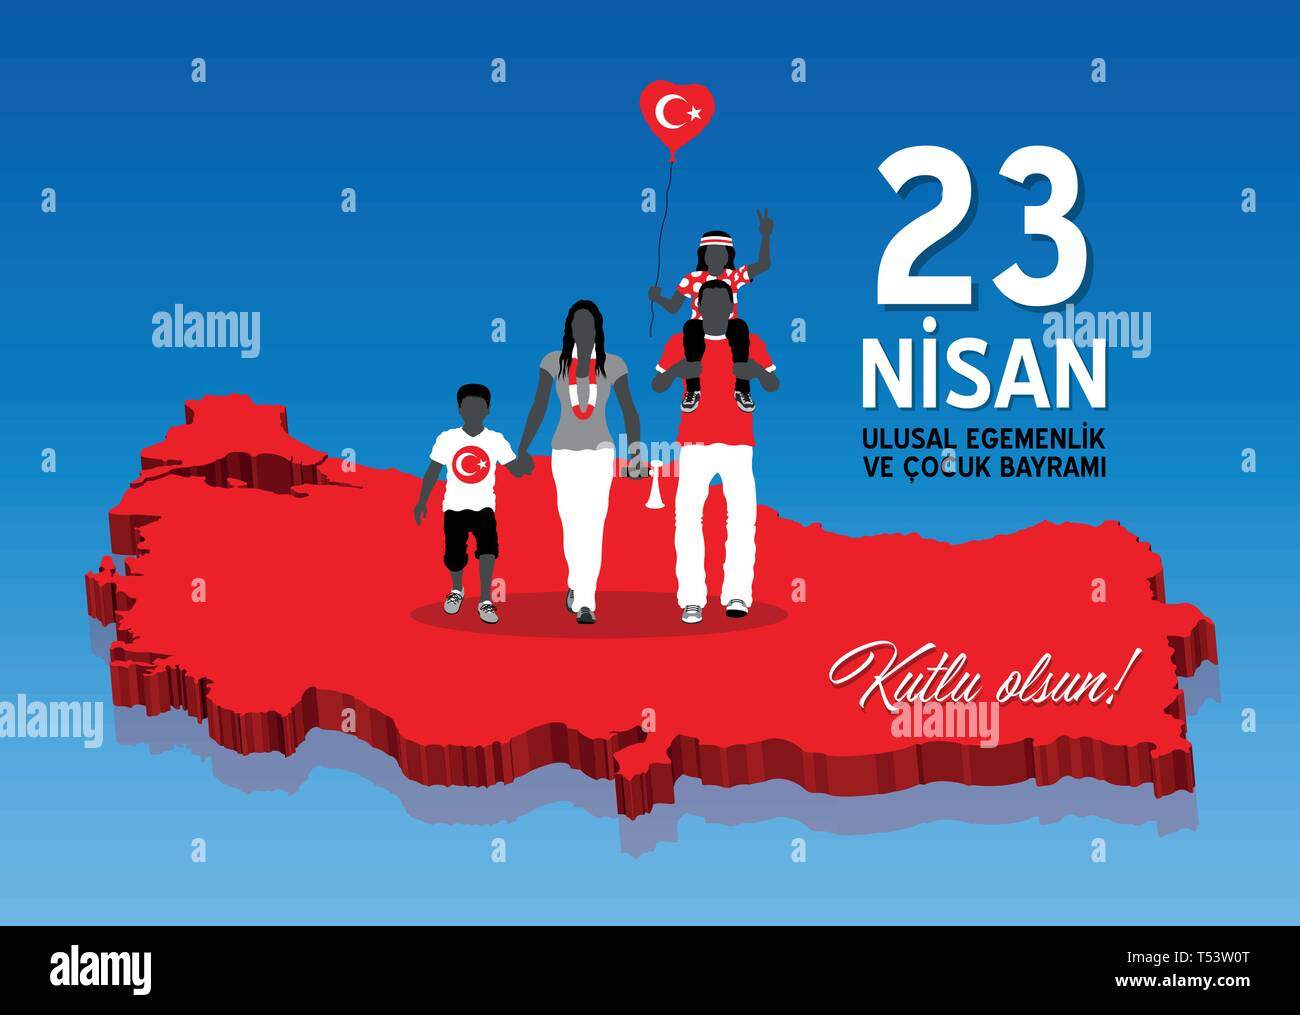 April 23 celebration over a Turkey map with Turkish family. All the objects are in different layers and the text types do not need any font. - Stock Vector